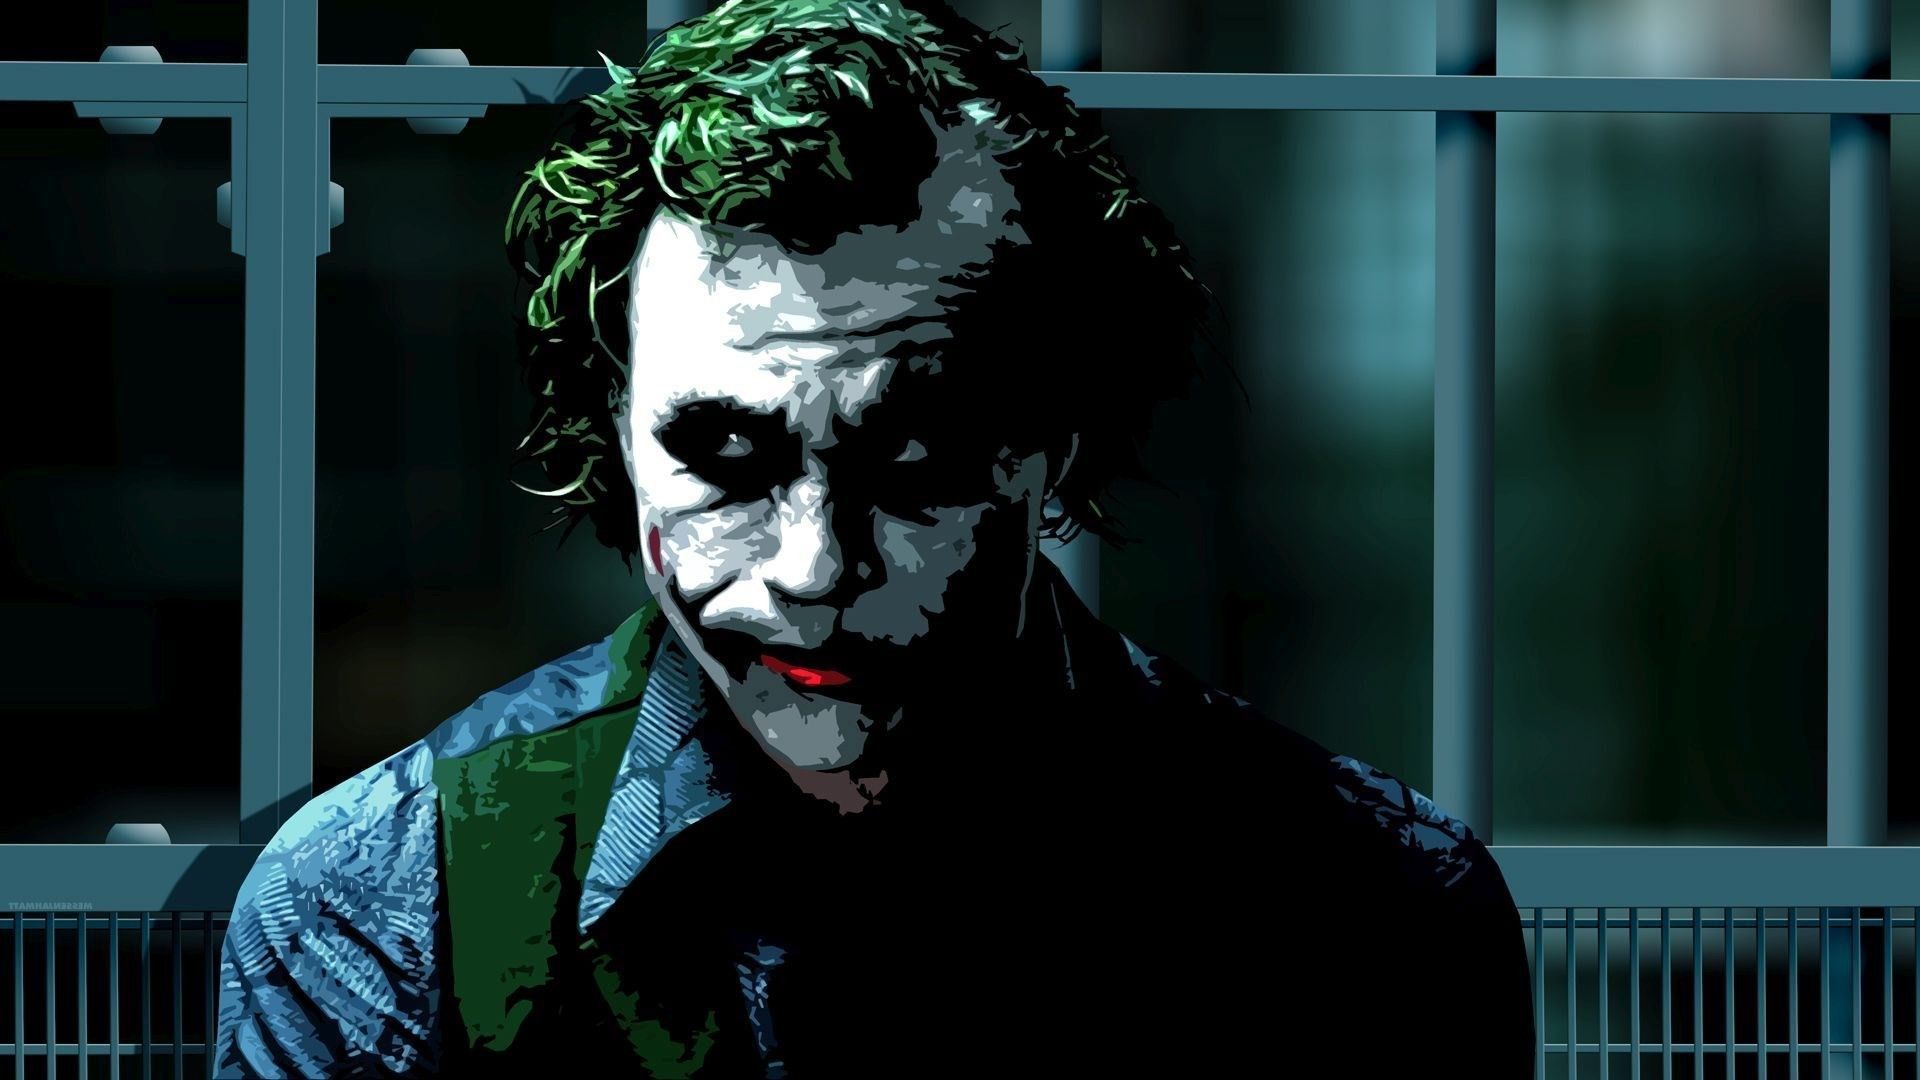 Joker Hd Wallpapers 1080p 80 Images Joker Hd Wallpaper Joker